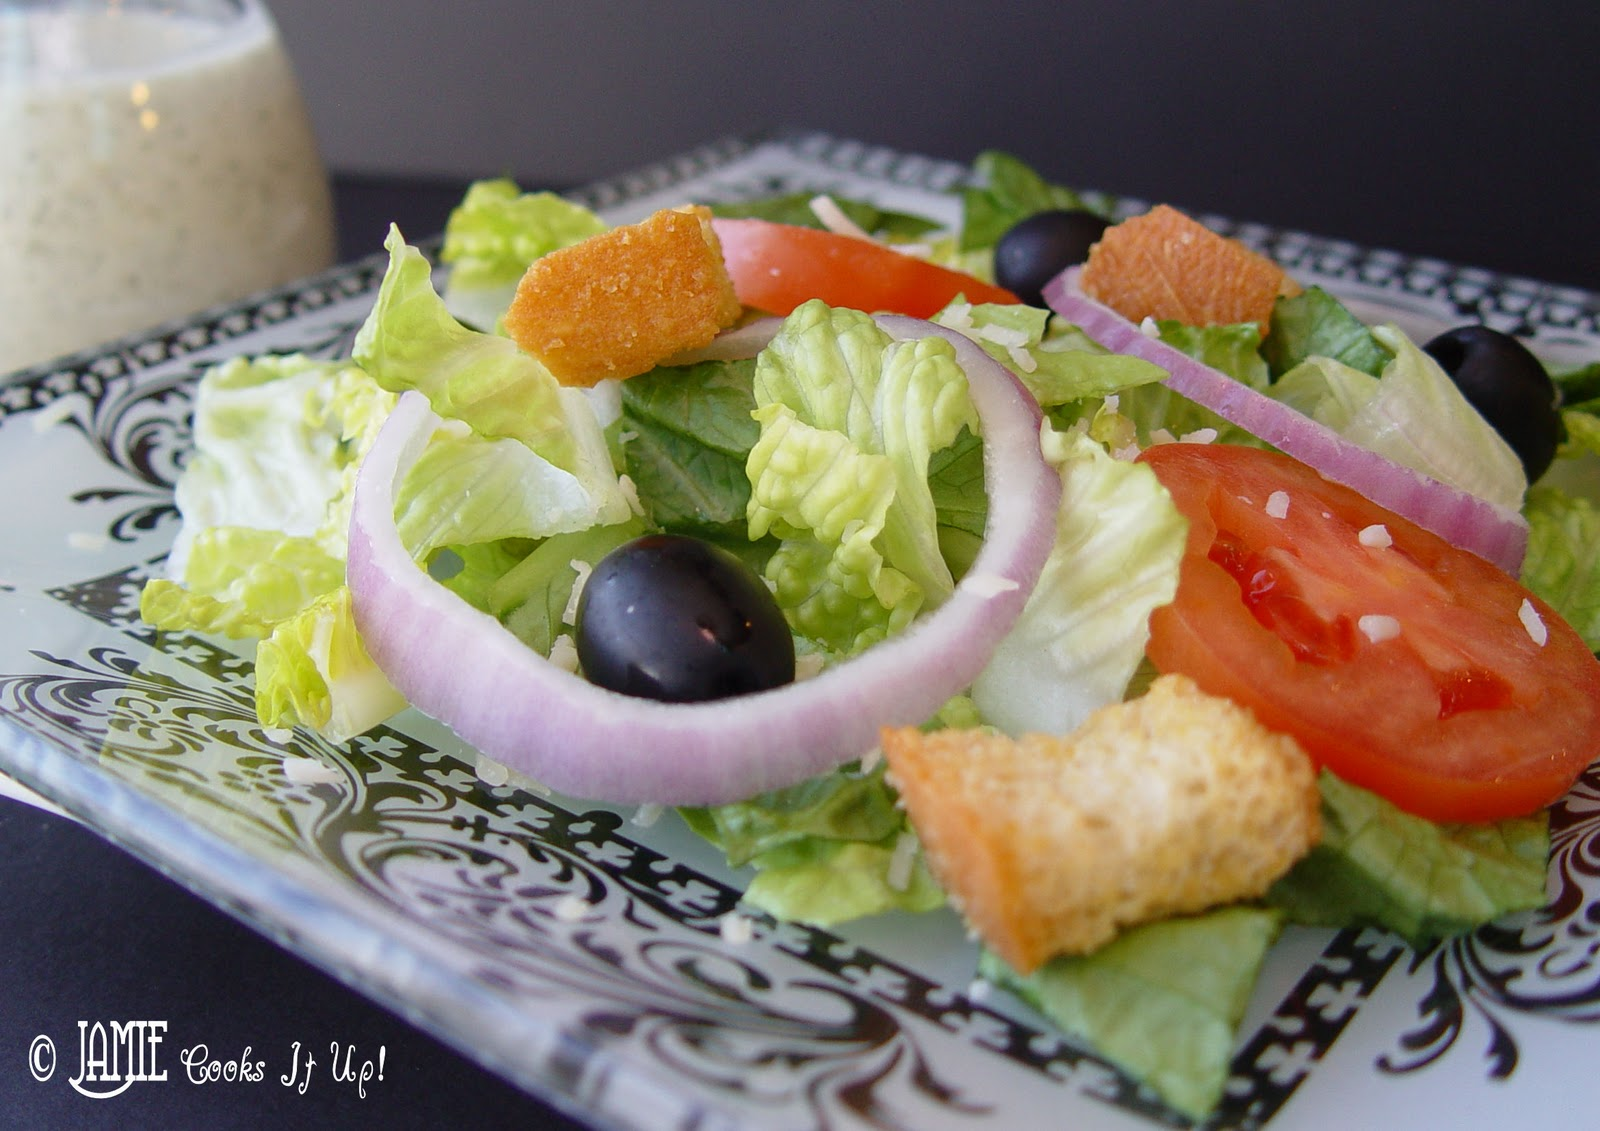 3 pour dressing over the top toss to coat and serve immediately pinterest friendly image below olive garden salad - How To Make Olive Garden Salad